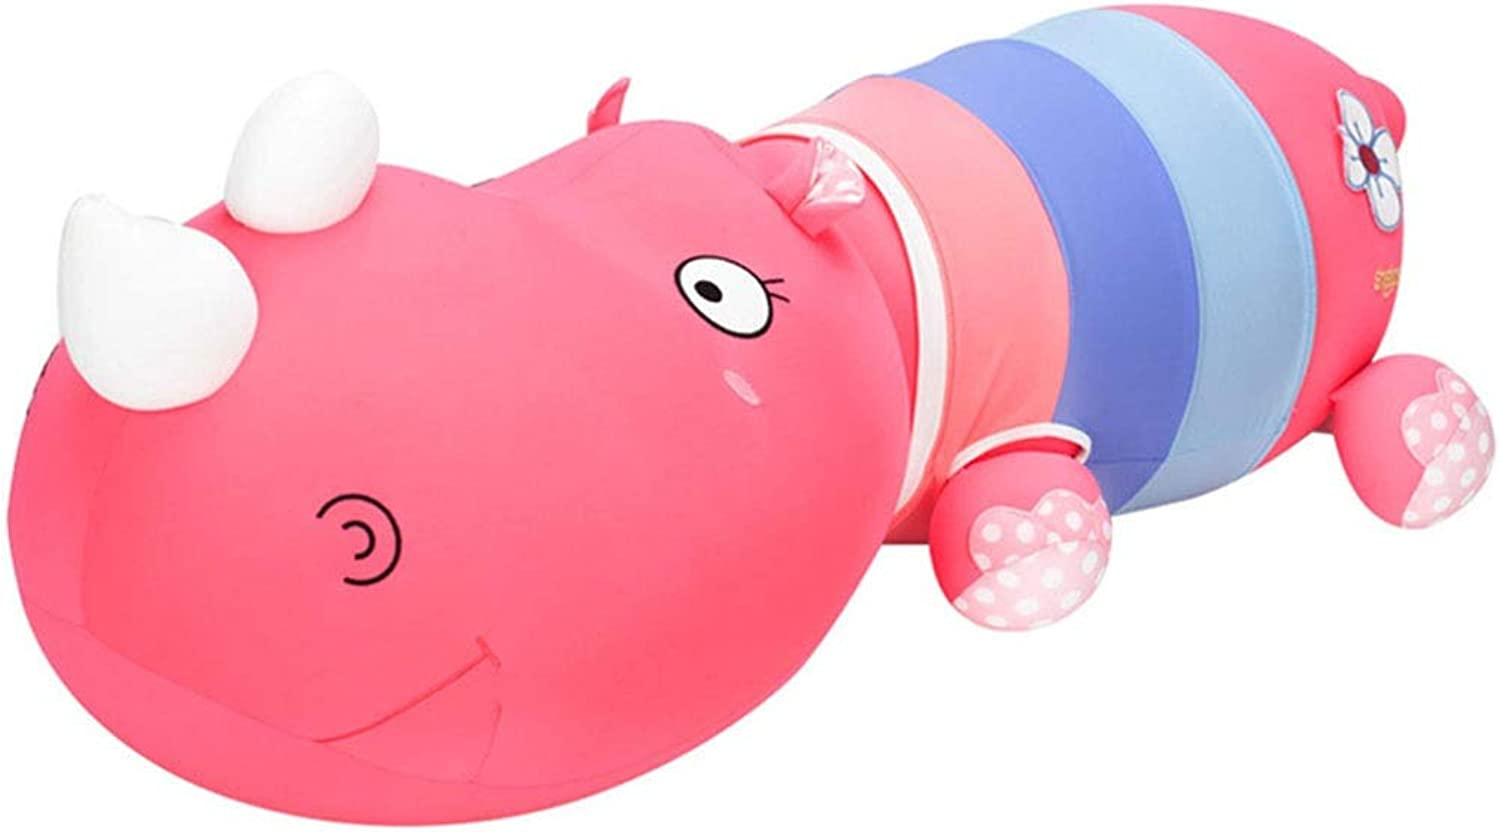 Pillows Plush Toys Mascots Cartoon Dolls Safe And Healthy Materials Office Cushions Bed Pillows Romantic Dating (color   Pink, Size   M)